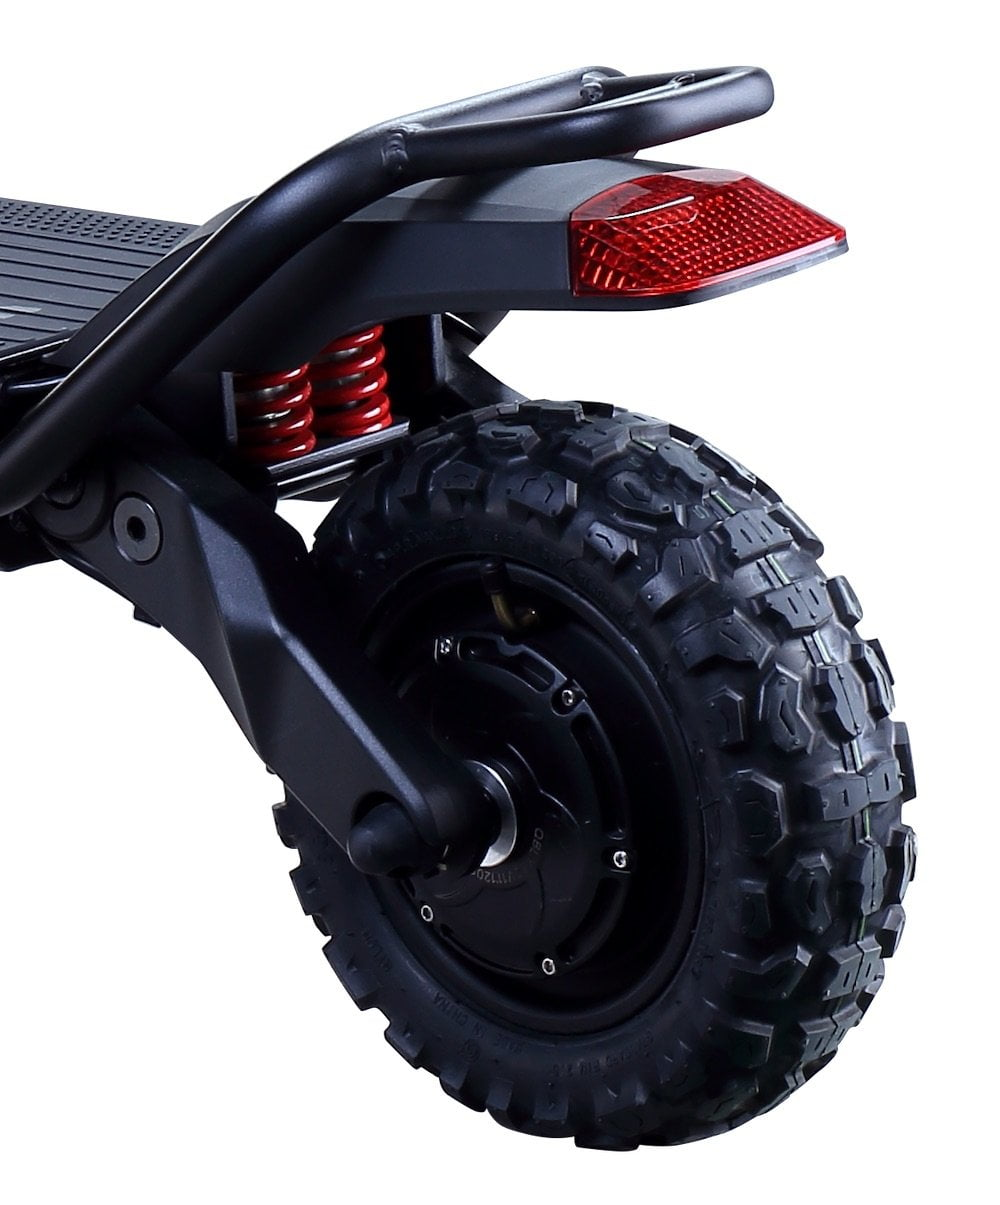 WOLF WARRIOR 11 - Maximum Speed & Acceleration, Off Road